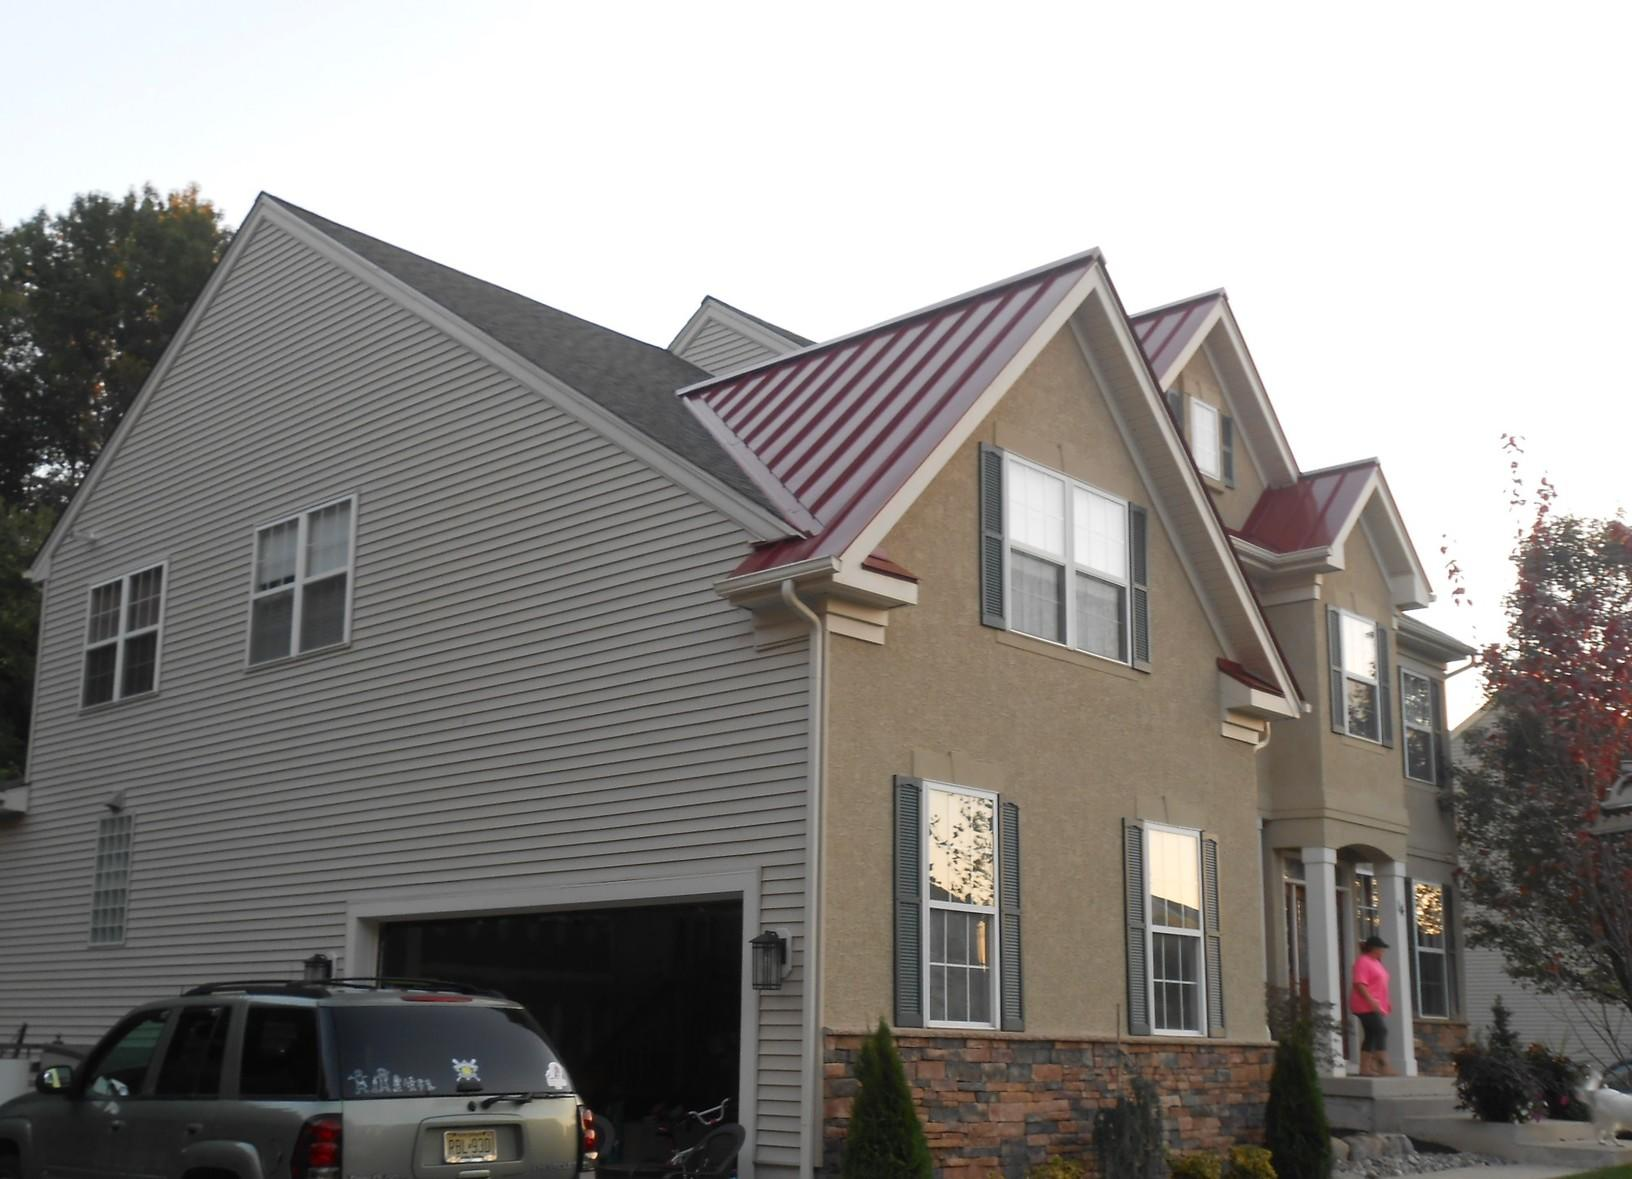 Replacing Storm-Damaged Asphalt Shingles with Owens Corning Shingles and Standing Seam Metal in Swedesboro, NJ - After Photo